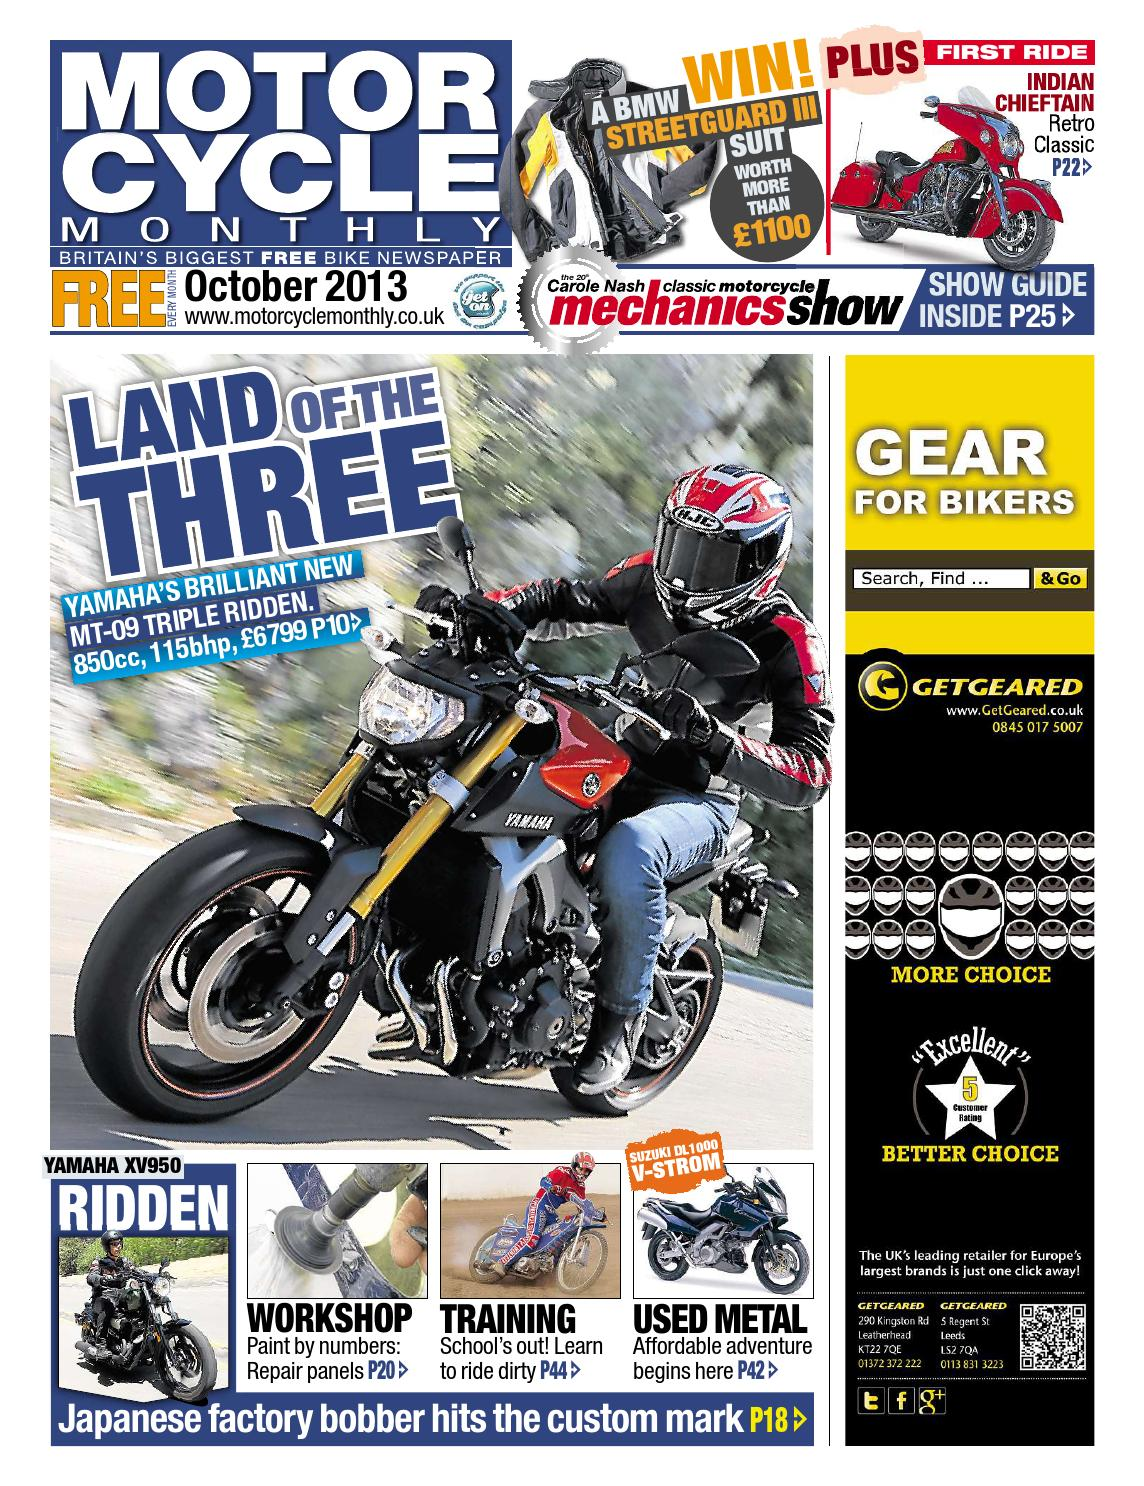 Motor Cycle Monthly October 2013 Full Edition By Mortons Media Suzuki M15a Engine Timing Marks Group Ltd Issuu